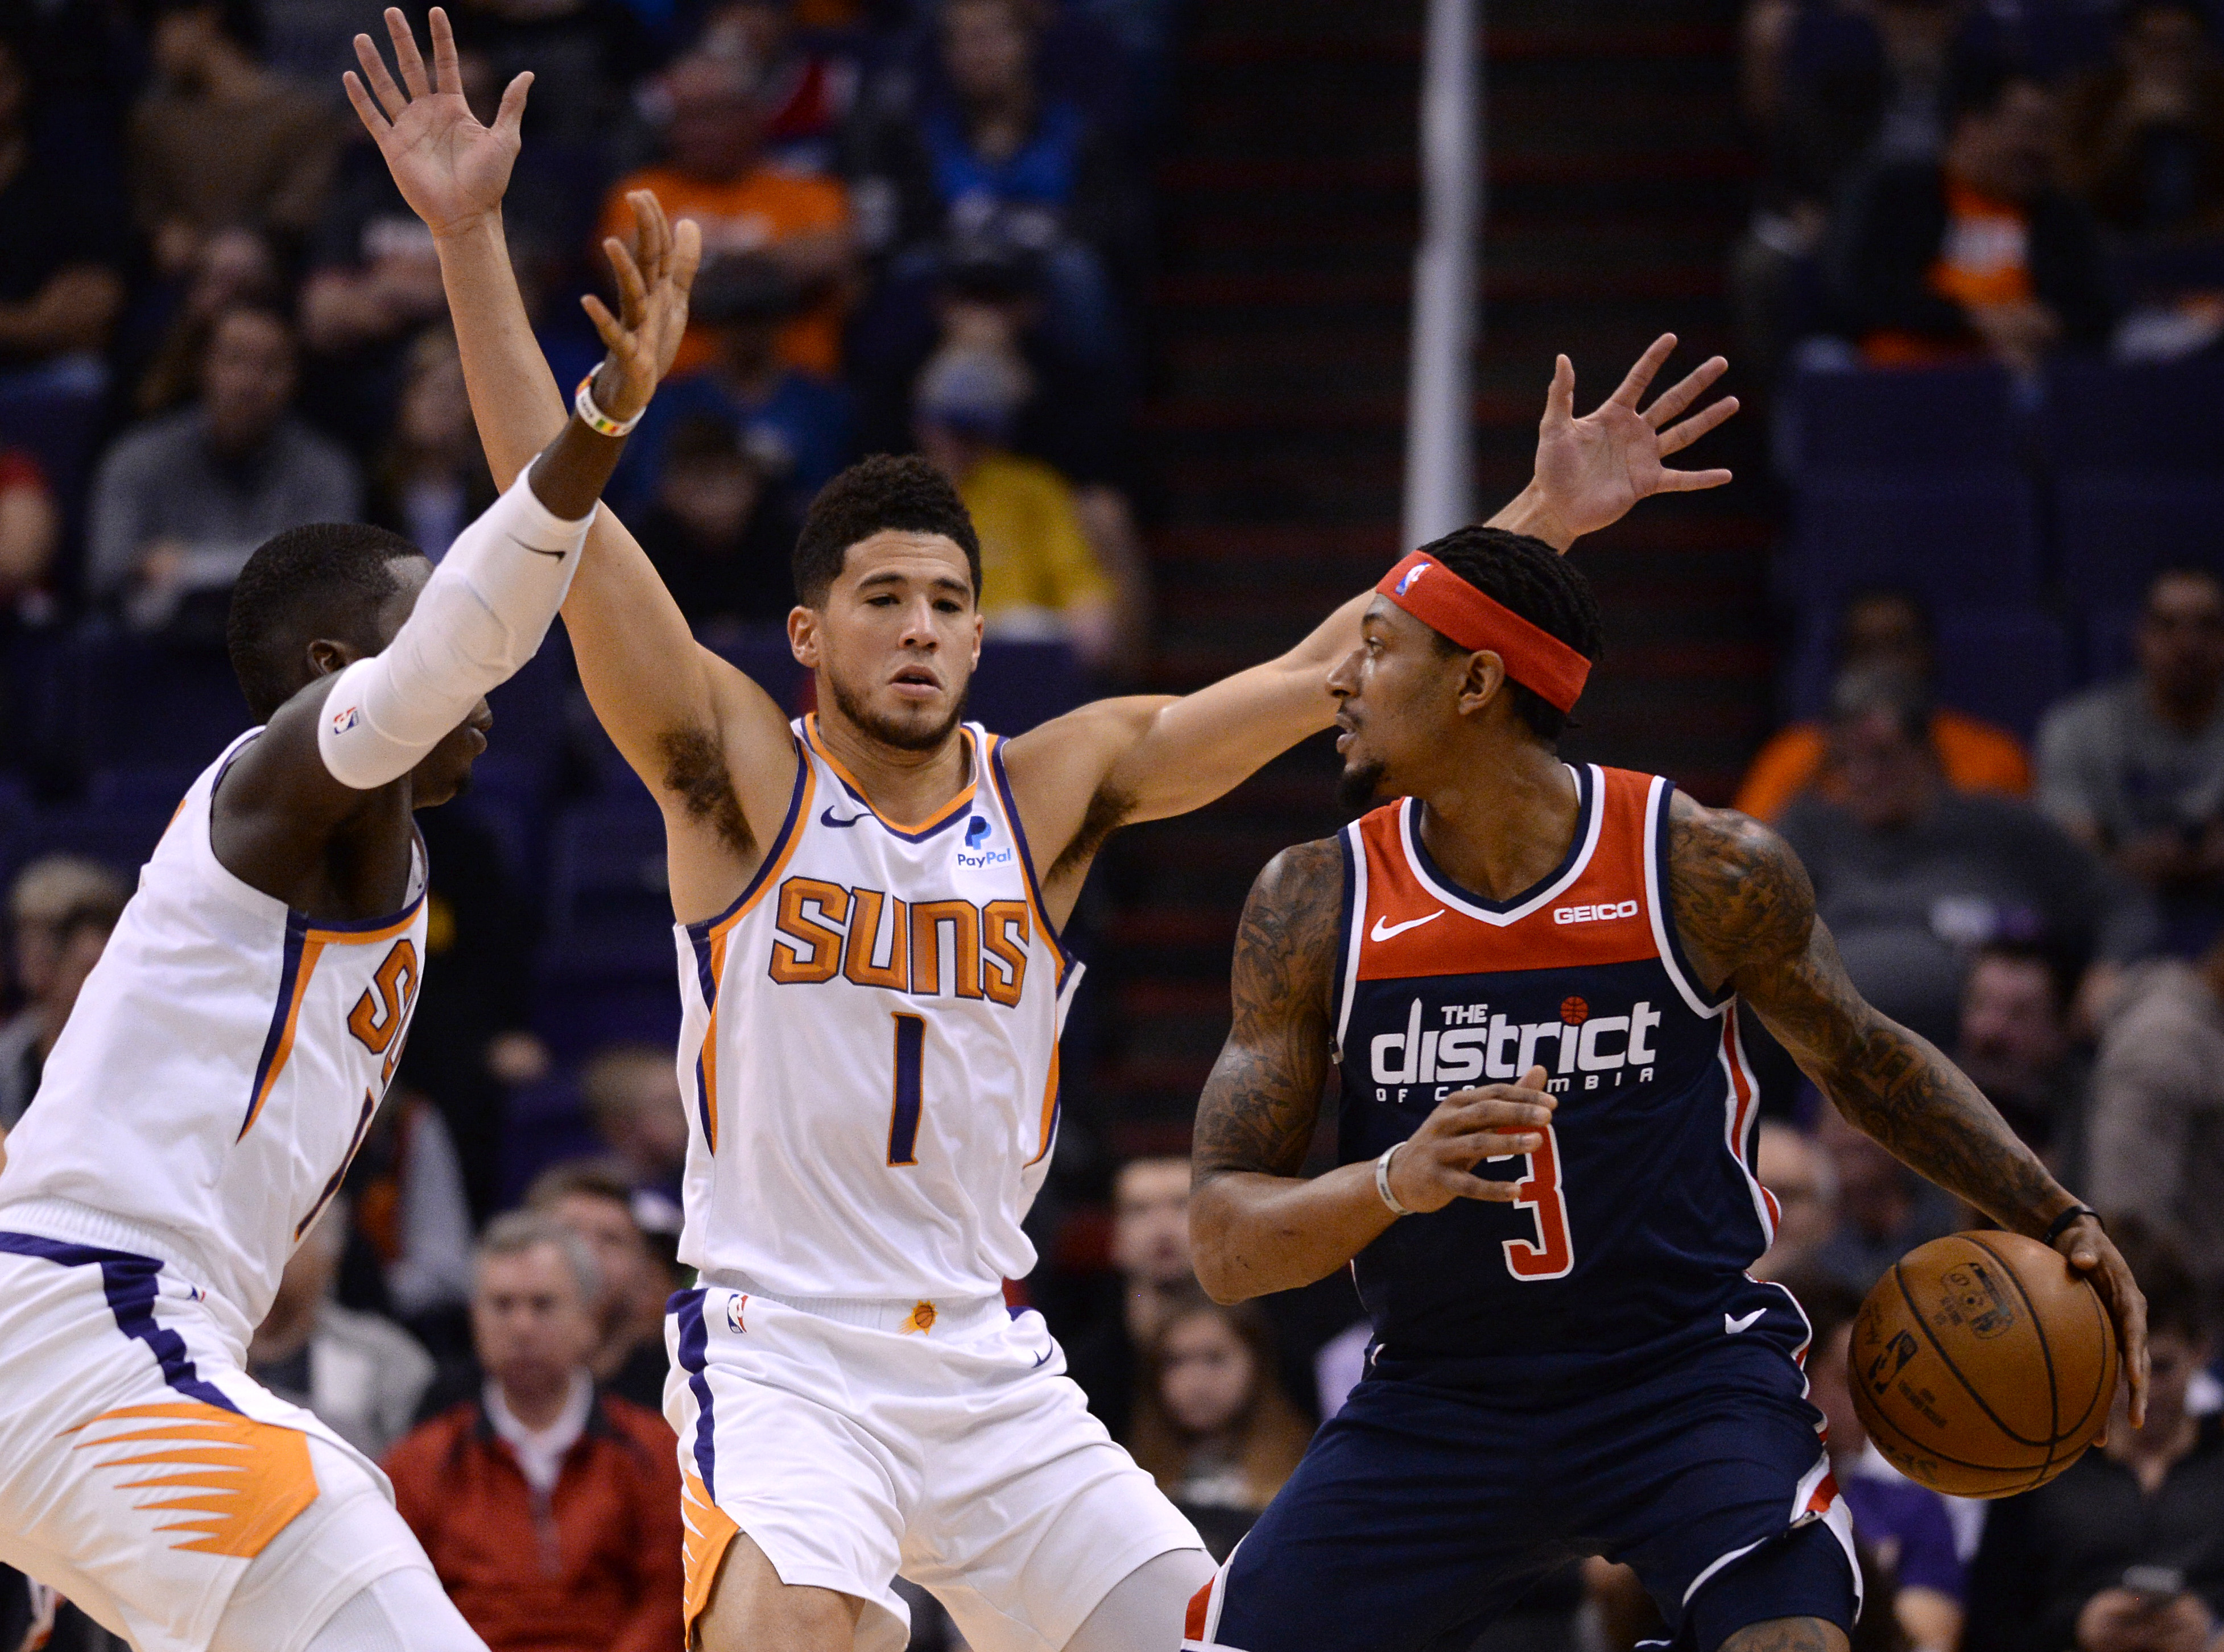 Suns coaching staff sends a message about losing skid with Thanksgiving practice